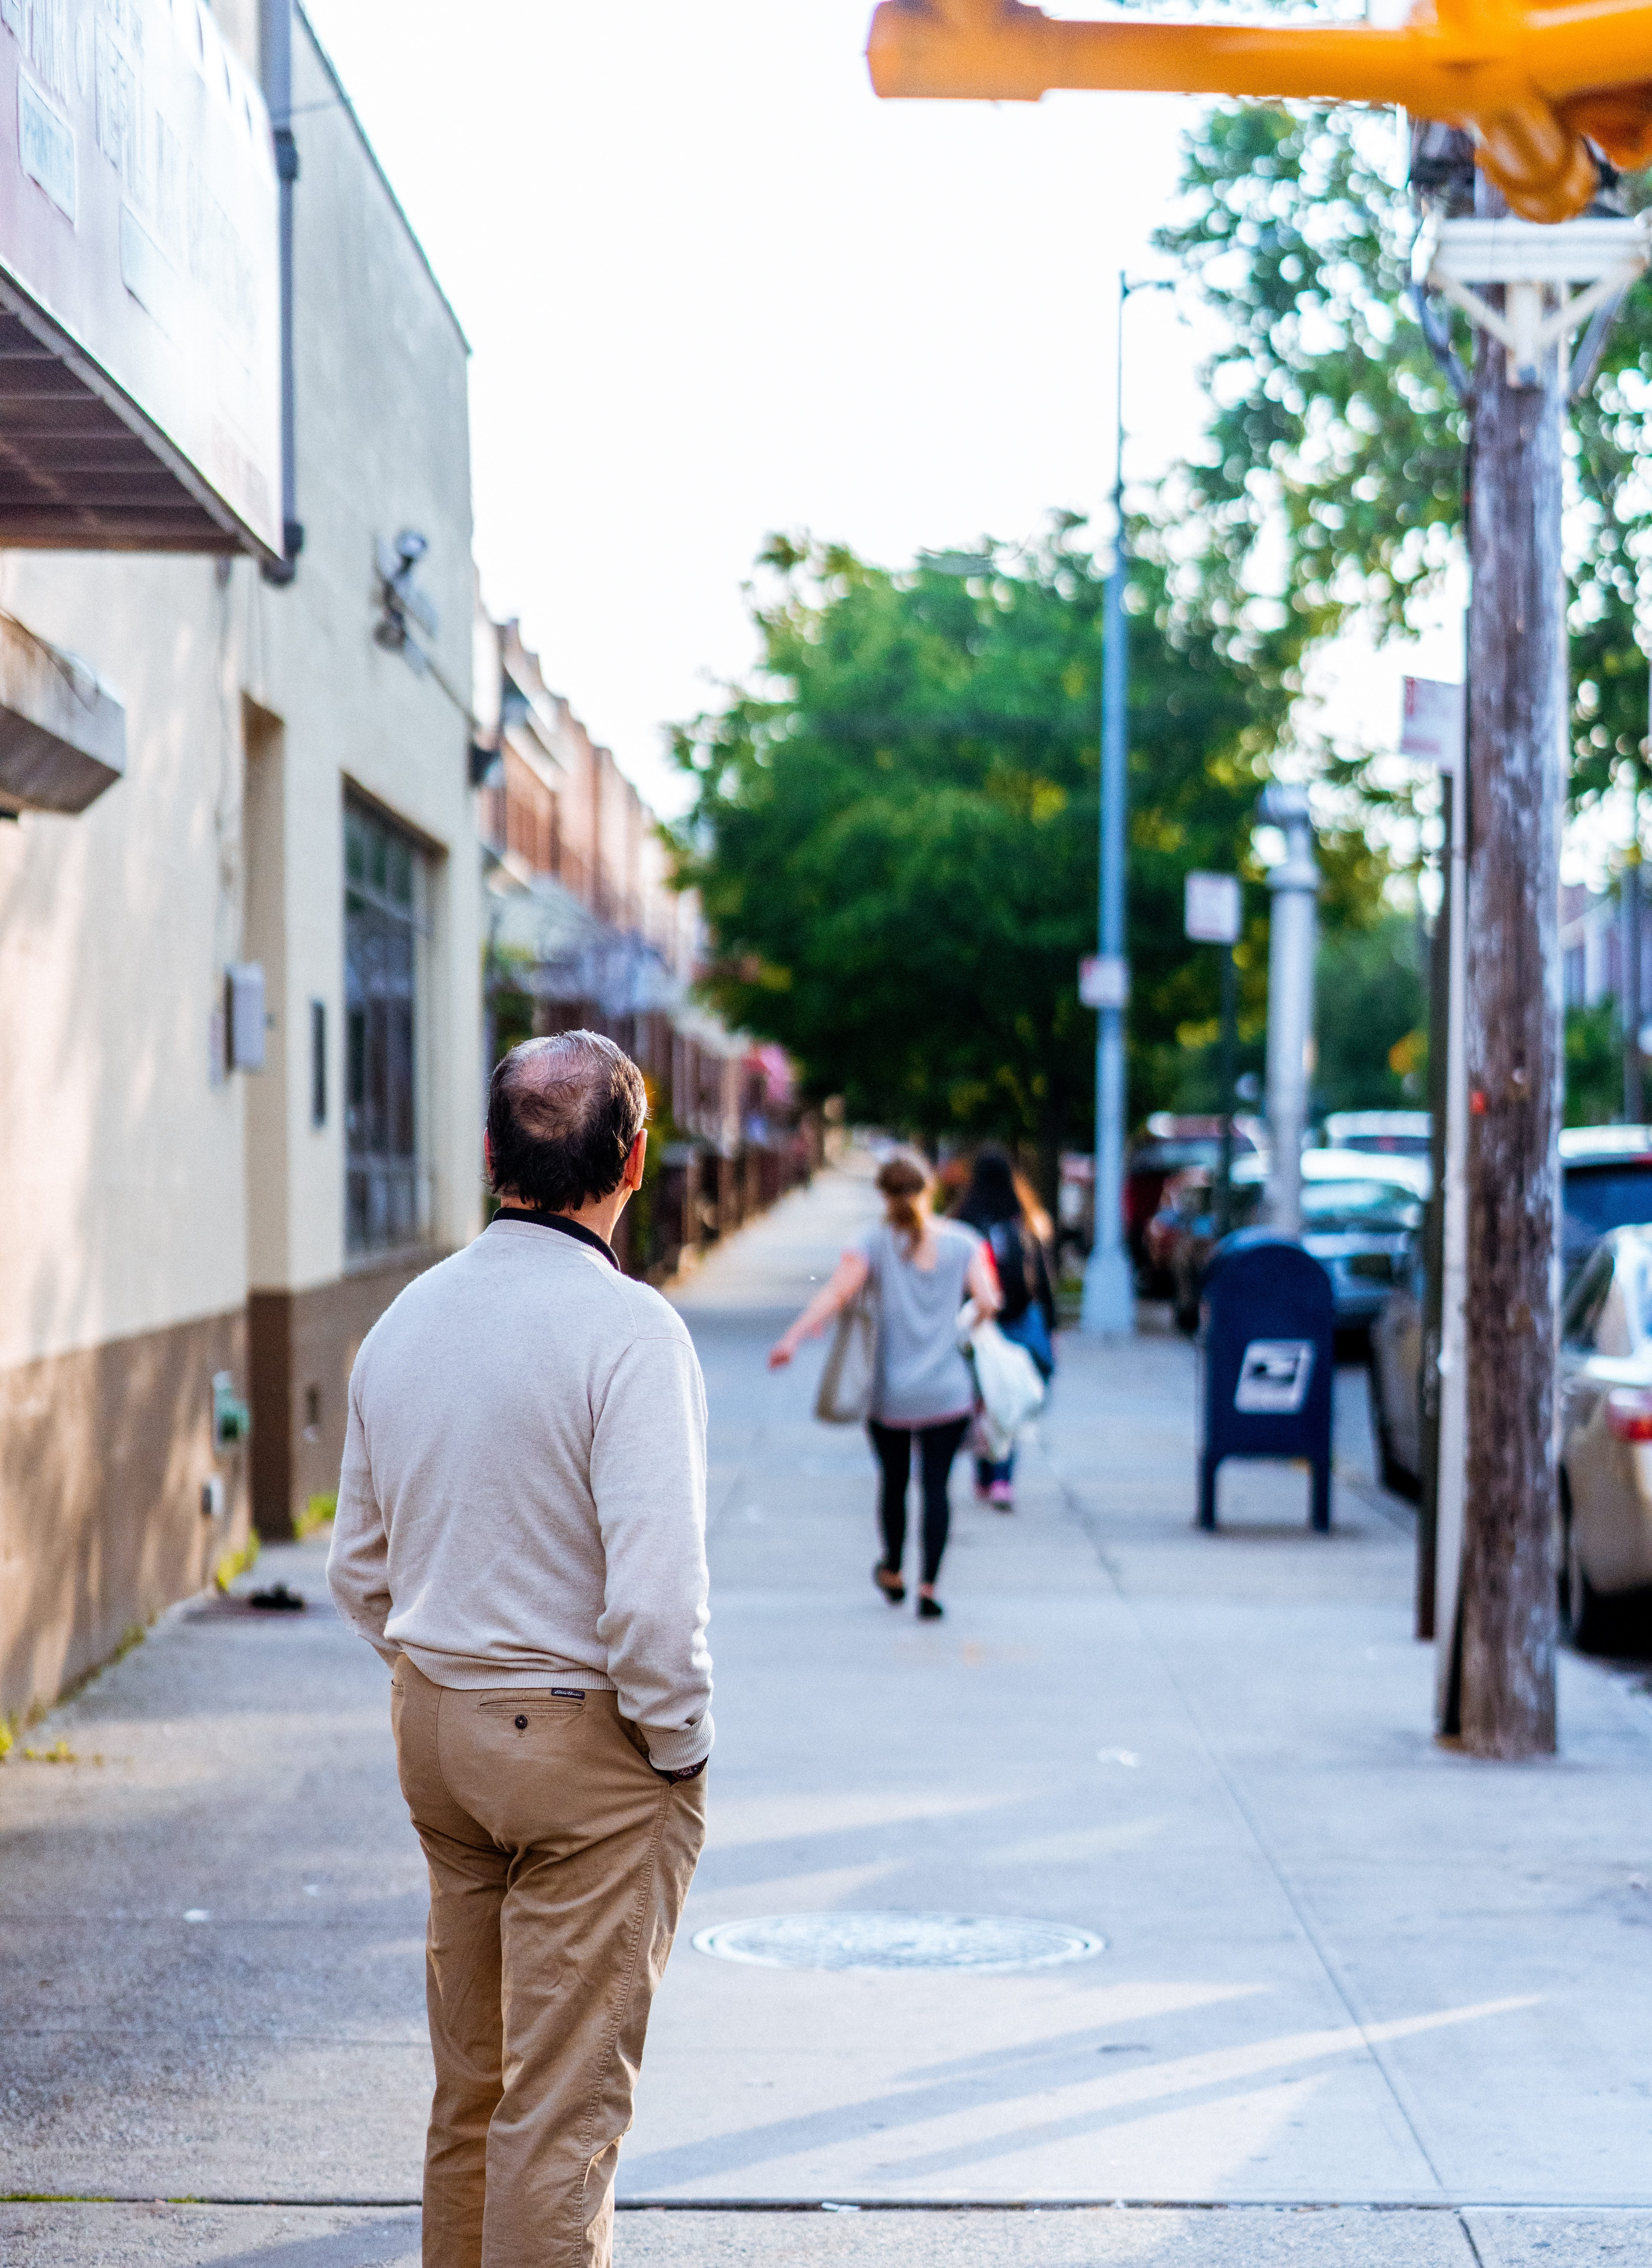 Man with hands in pockets watching woman with bags walk away; image by Jurgen Huggins, via unsplash.com.